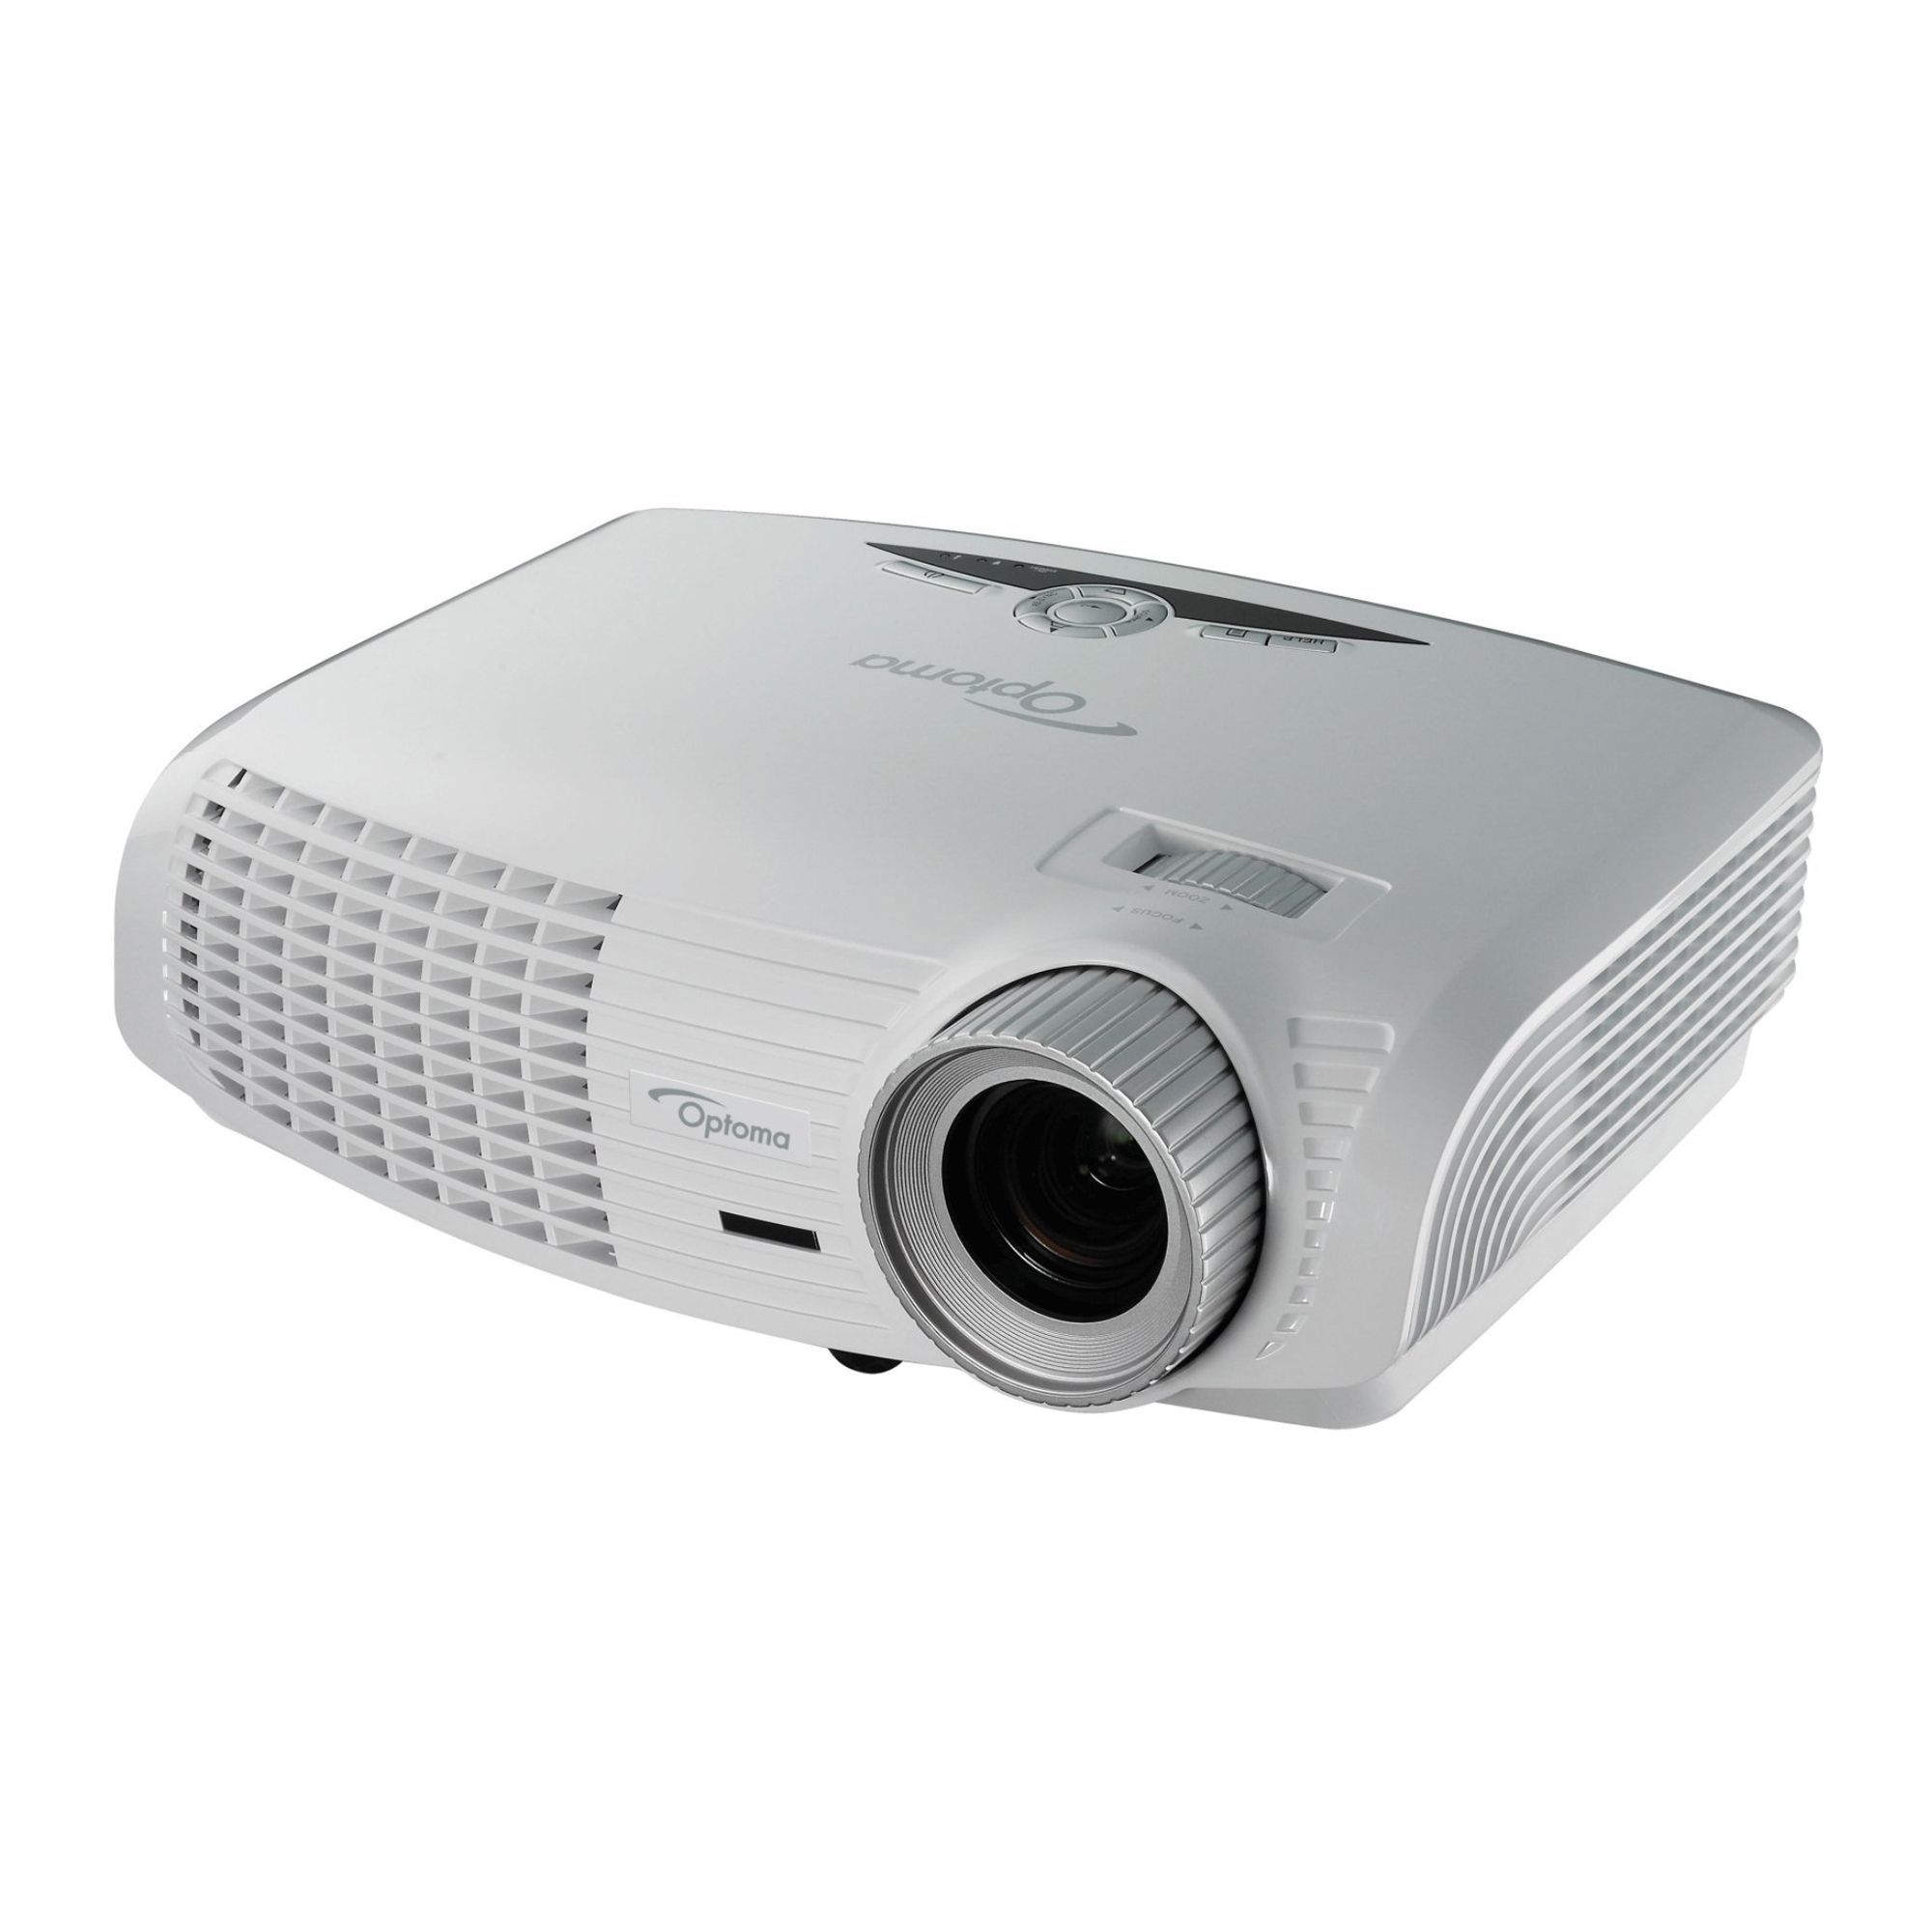 OPTOMA HD25 3D READY PROJECTOR at Tesco Direct